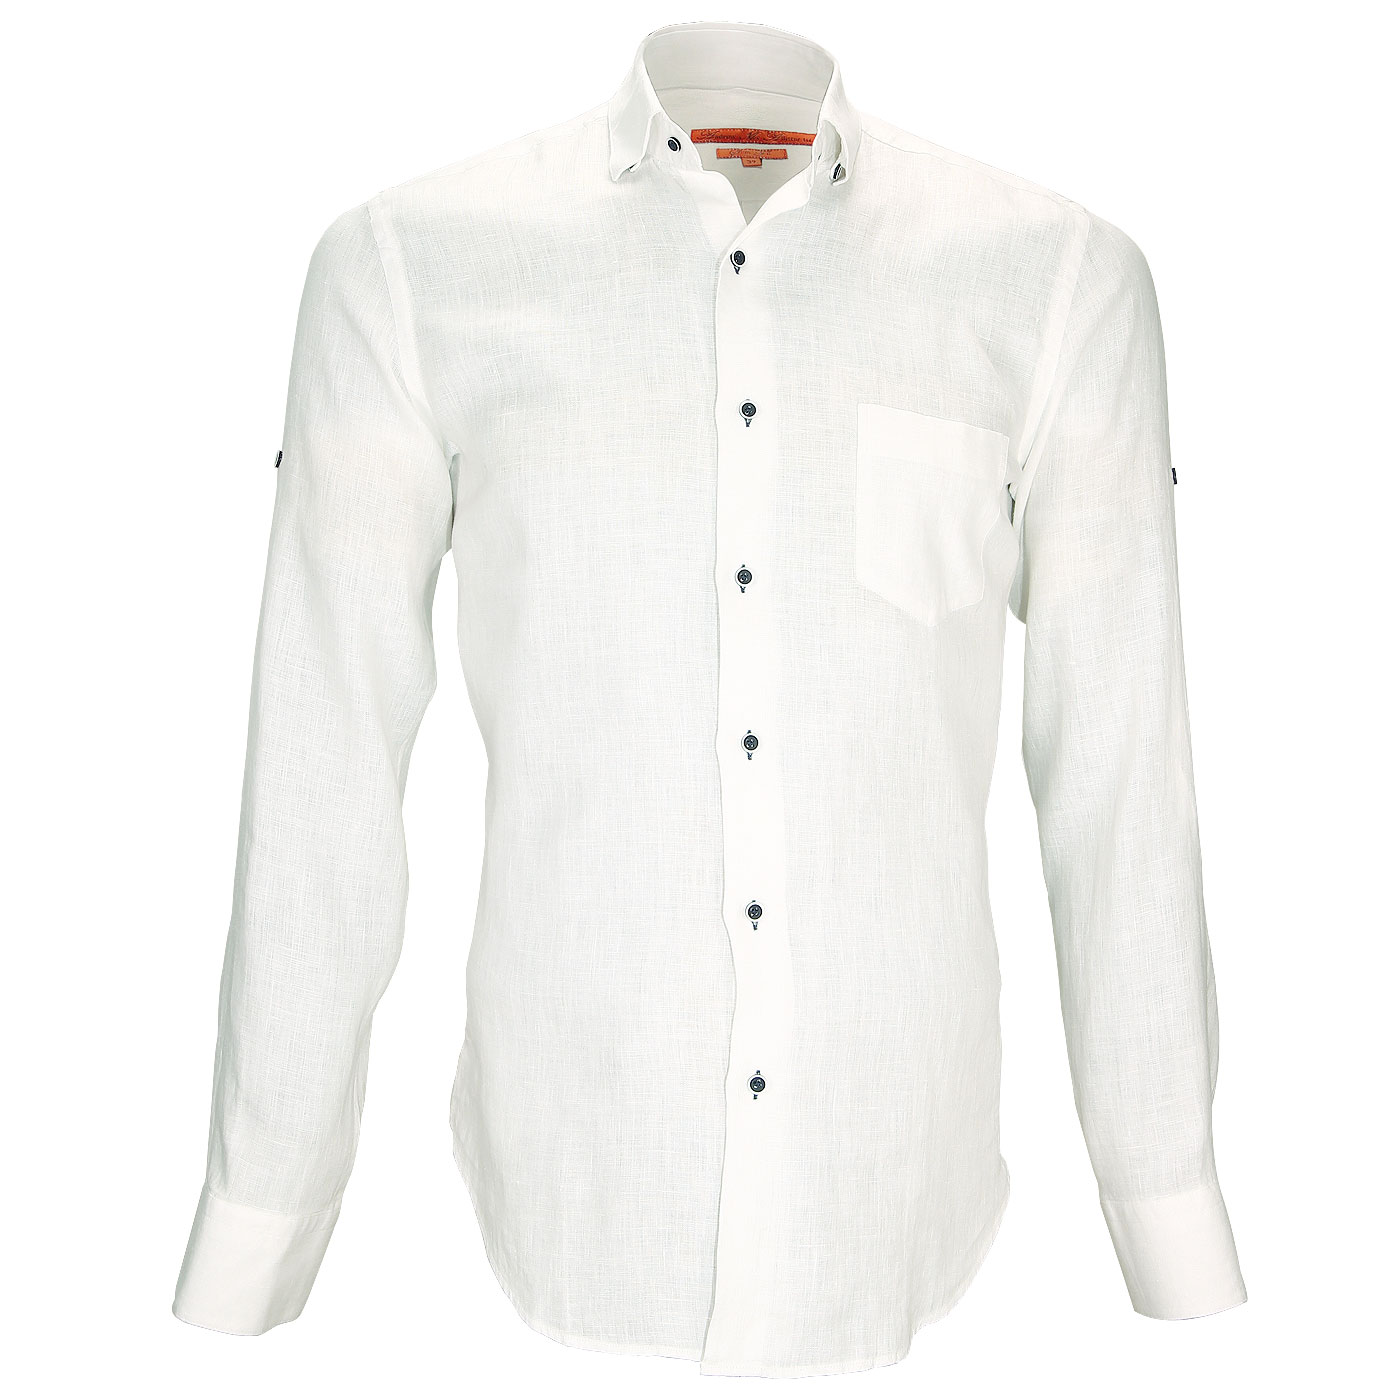 Shirt's Cut Made Wise Choice with webmenshirts Advices